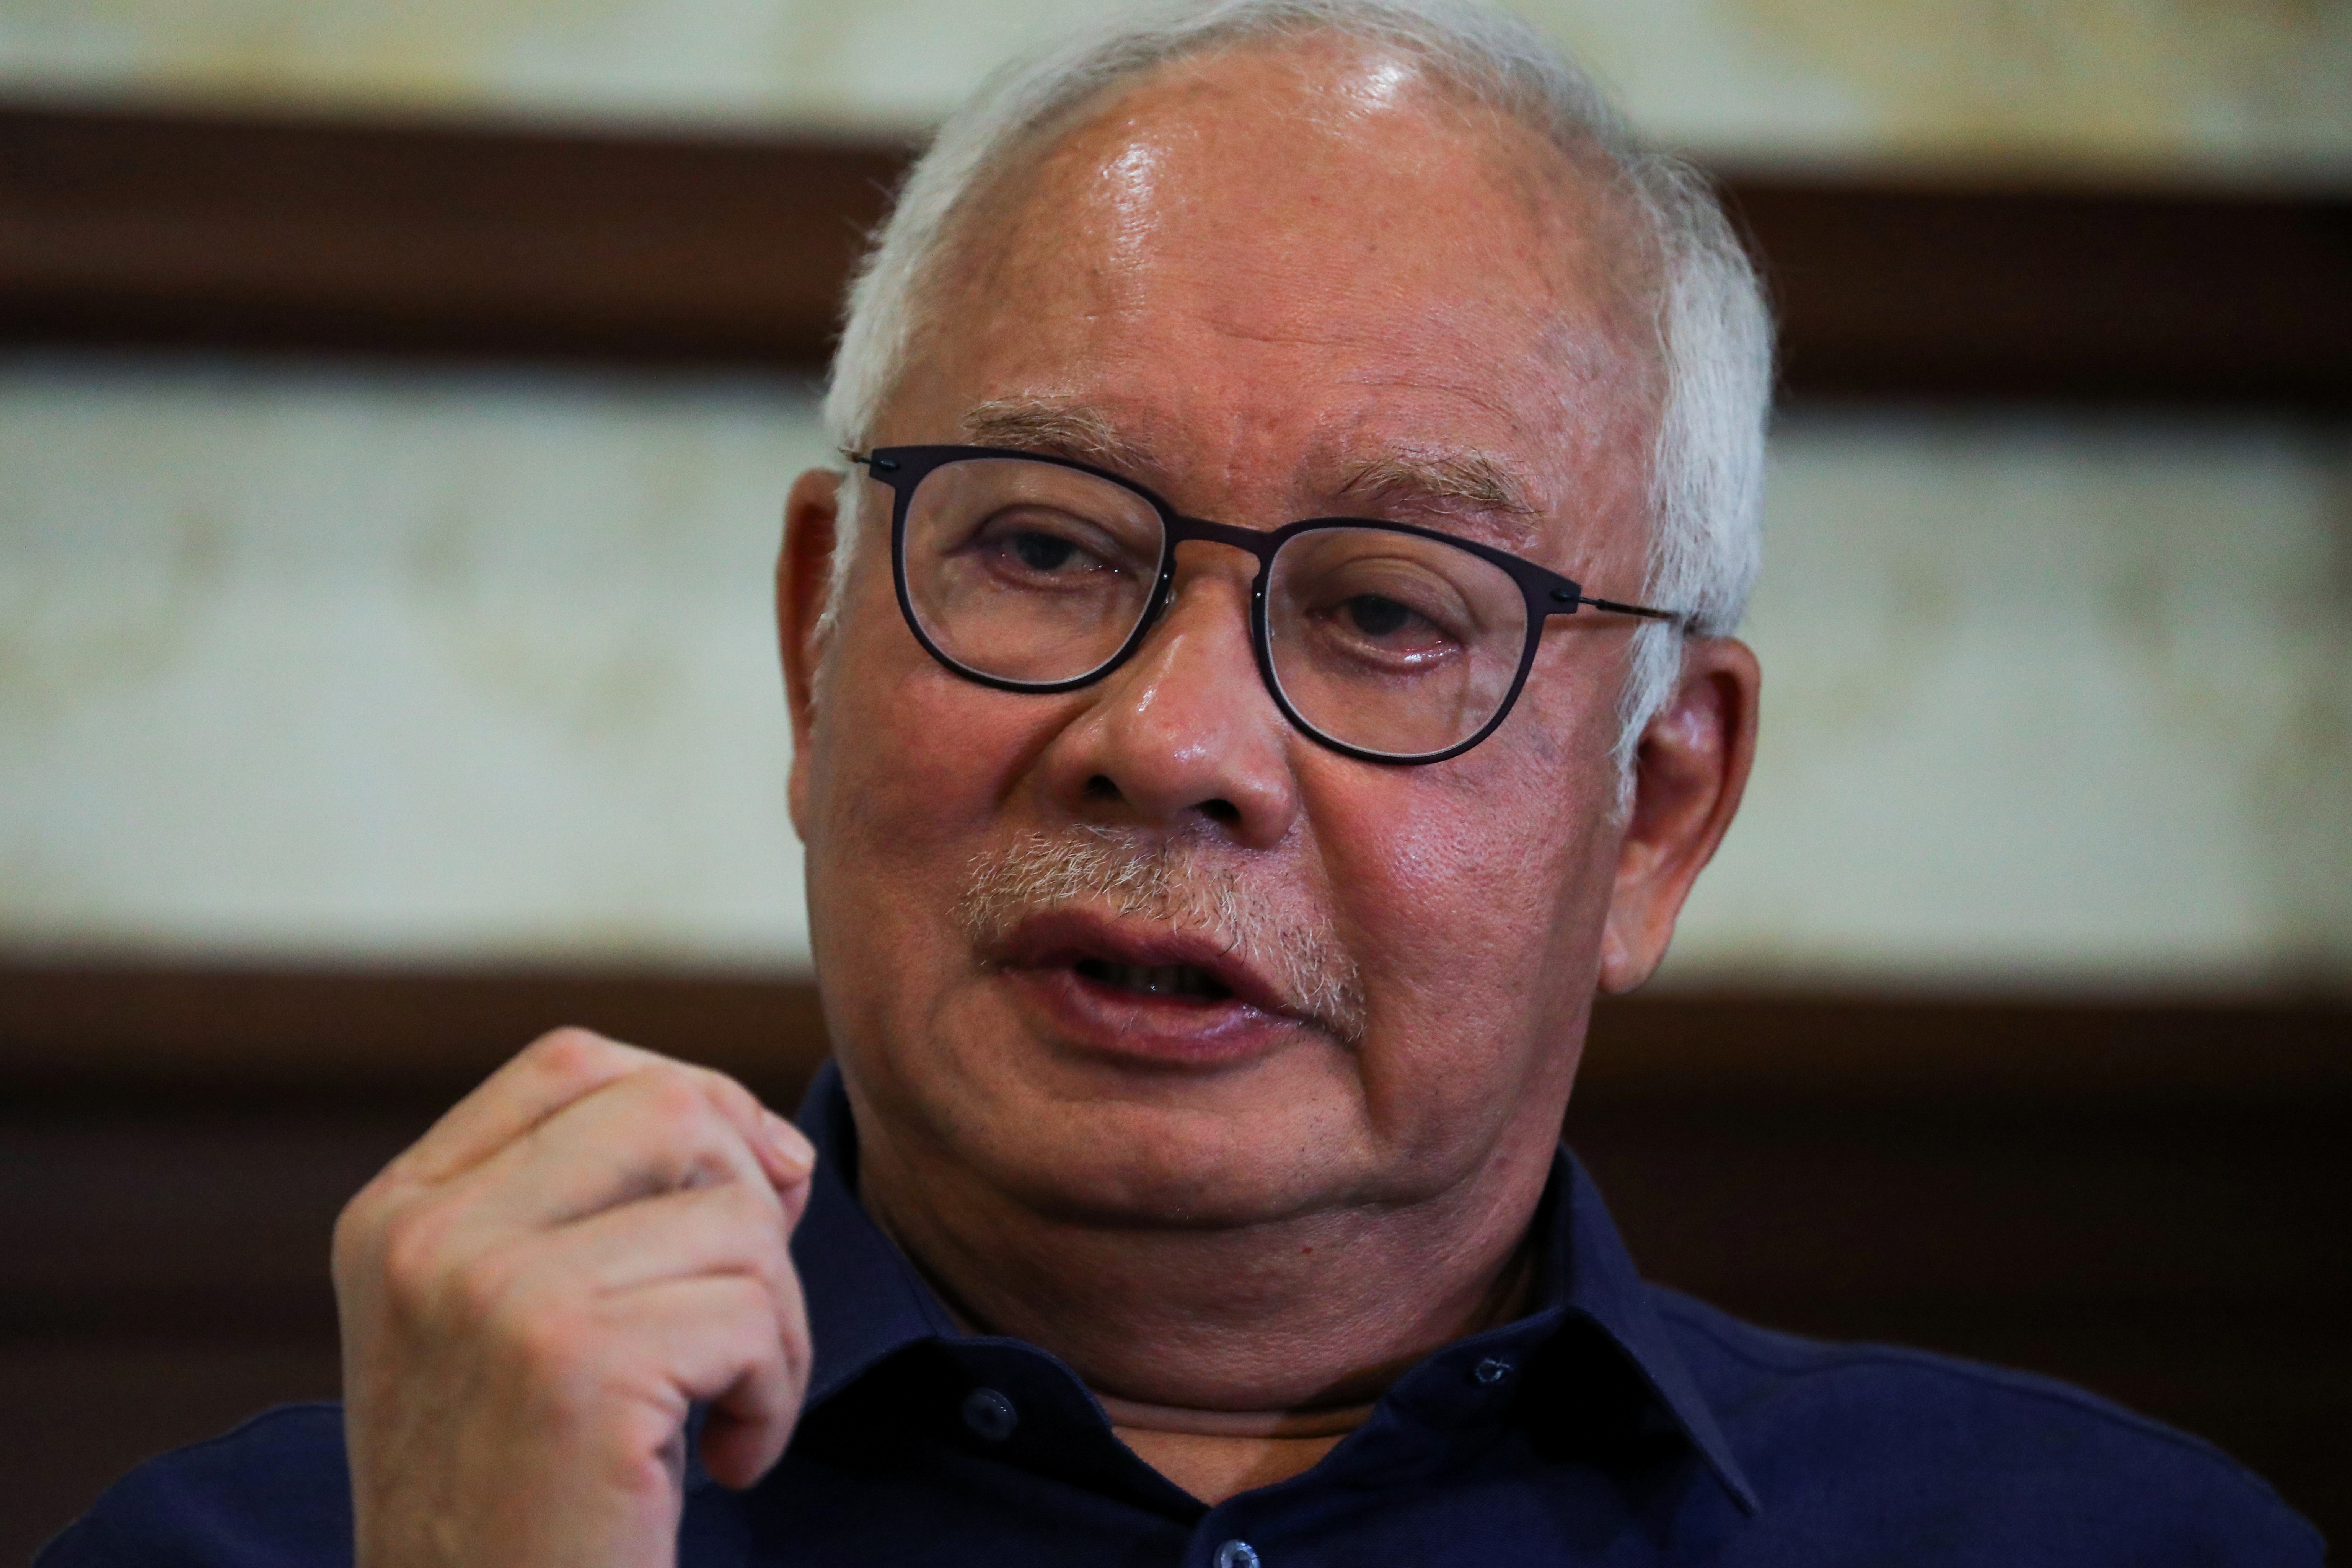 Malaysia's former Prime Minister Najib Razak speaks during an interview with Reuters in Kuala Lumpur, Malaysia September 18, 2021. Picture taken September 18, 2021. REUTERS/Lim Huey Teng